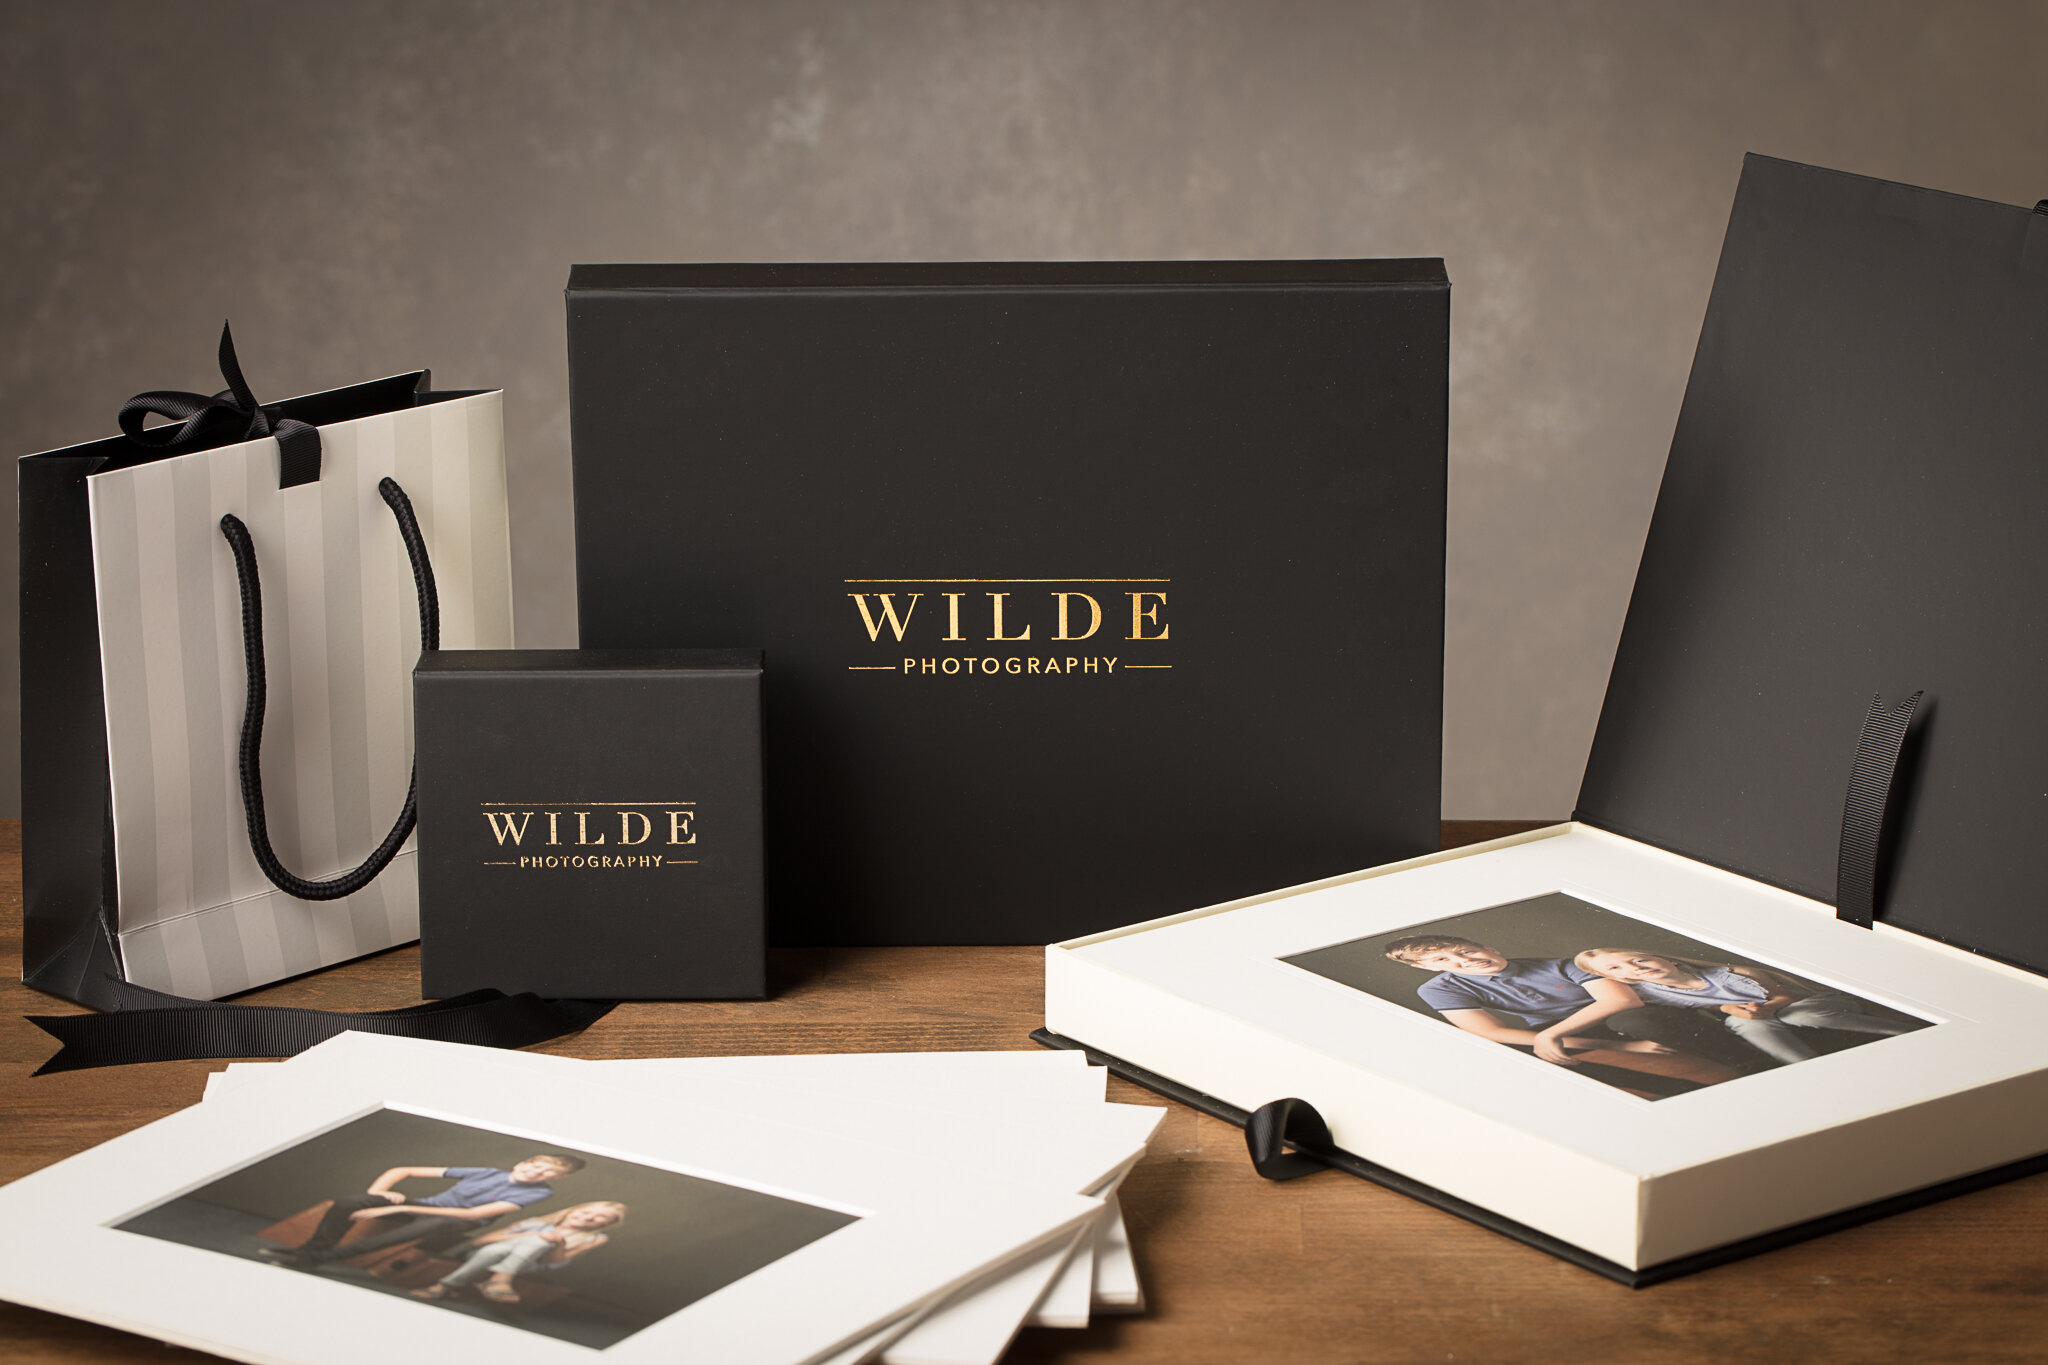 Our Signature Collection Folio Box holds 10 Matted 7x5 Prints